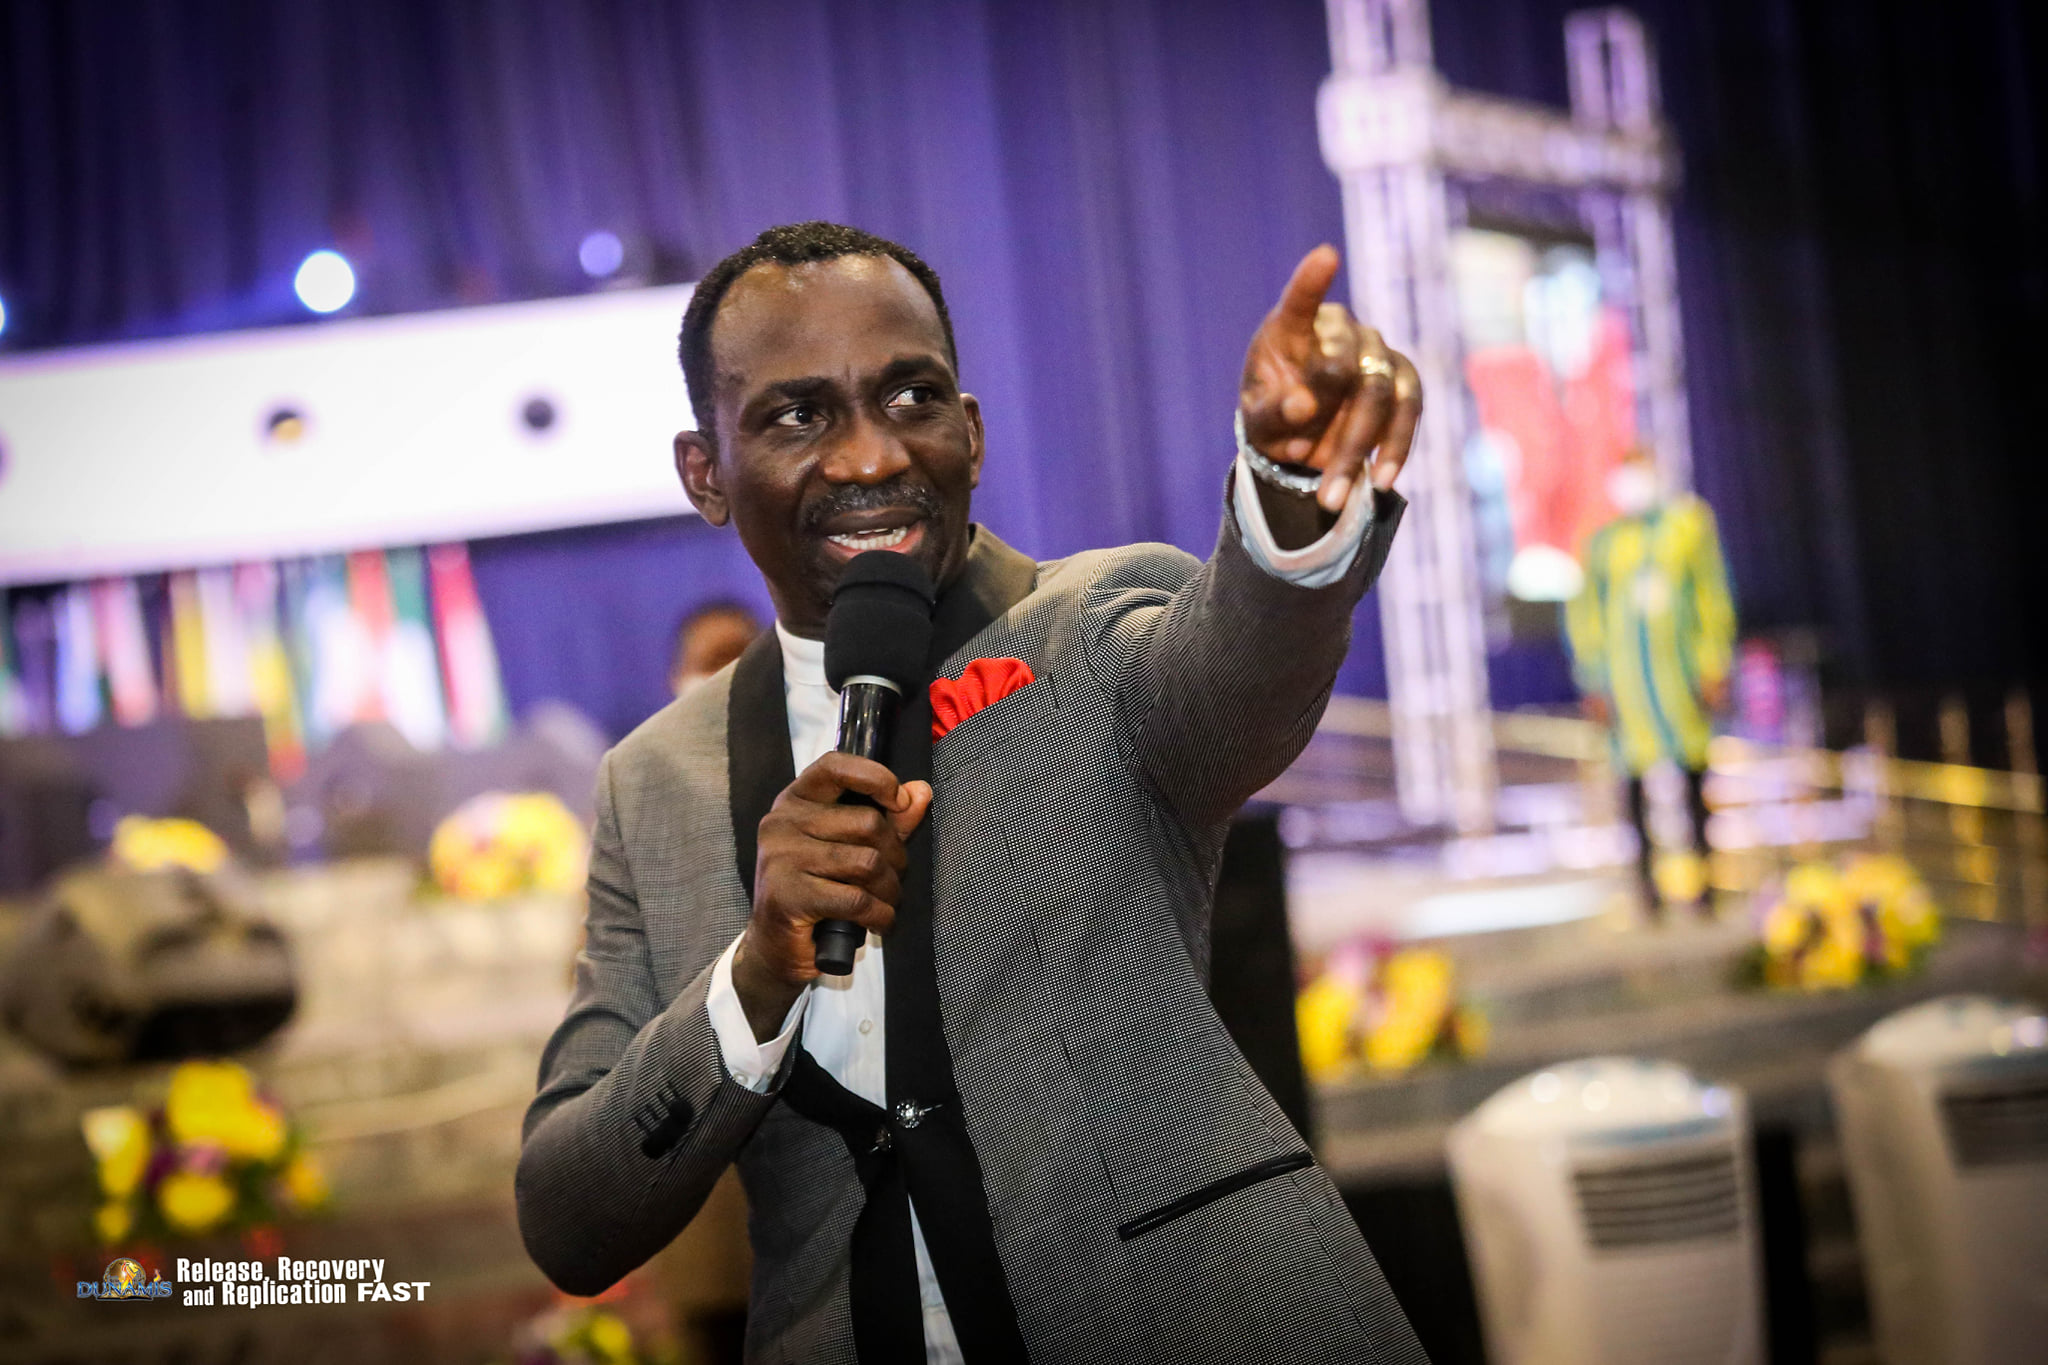 Download SHILOH 2020 – TURNAROUND ENCOUNTERS – HOUR OF VISITATION DAY 2.2 – Pastor Paul Enenche.mp3